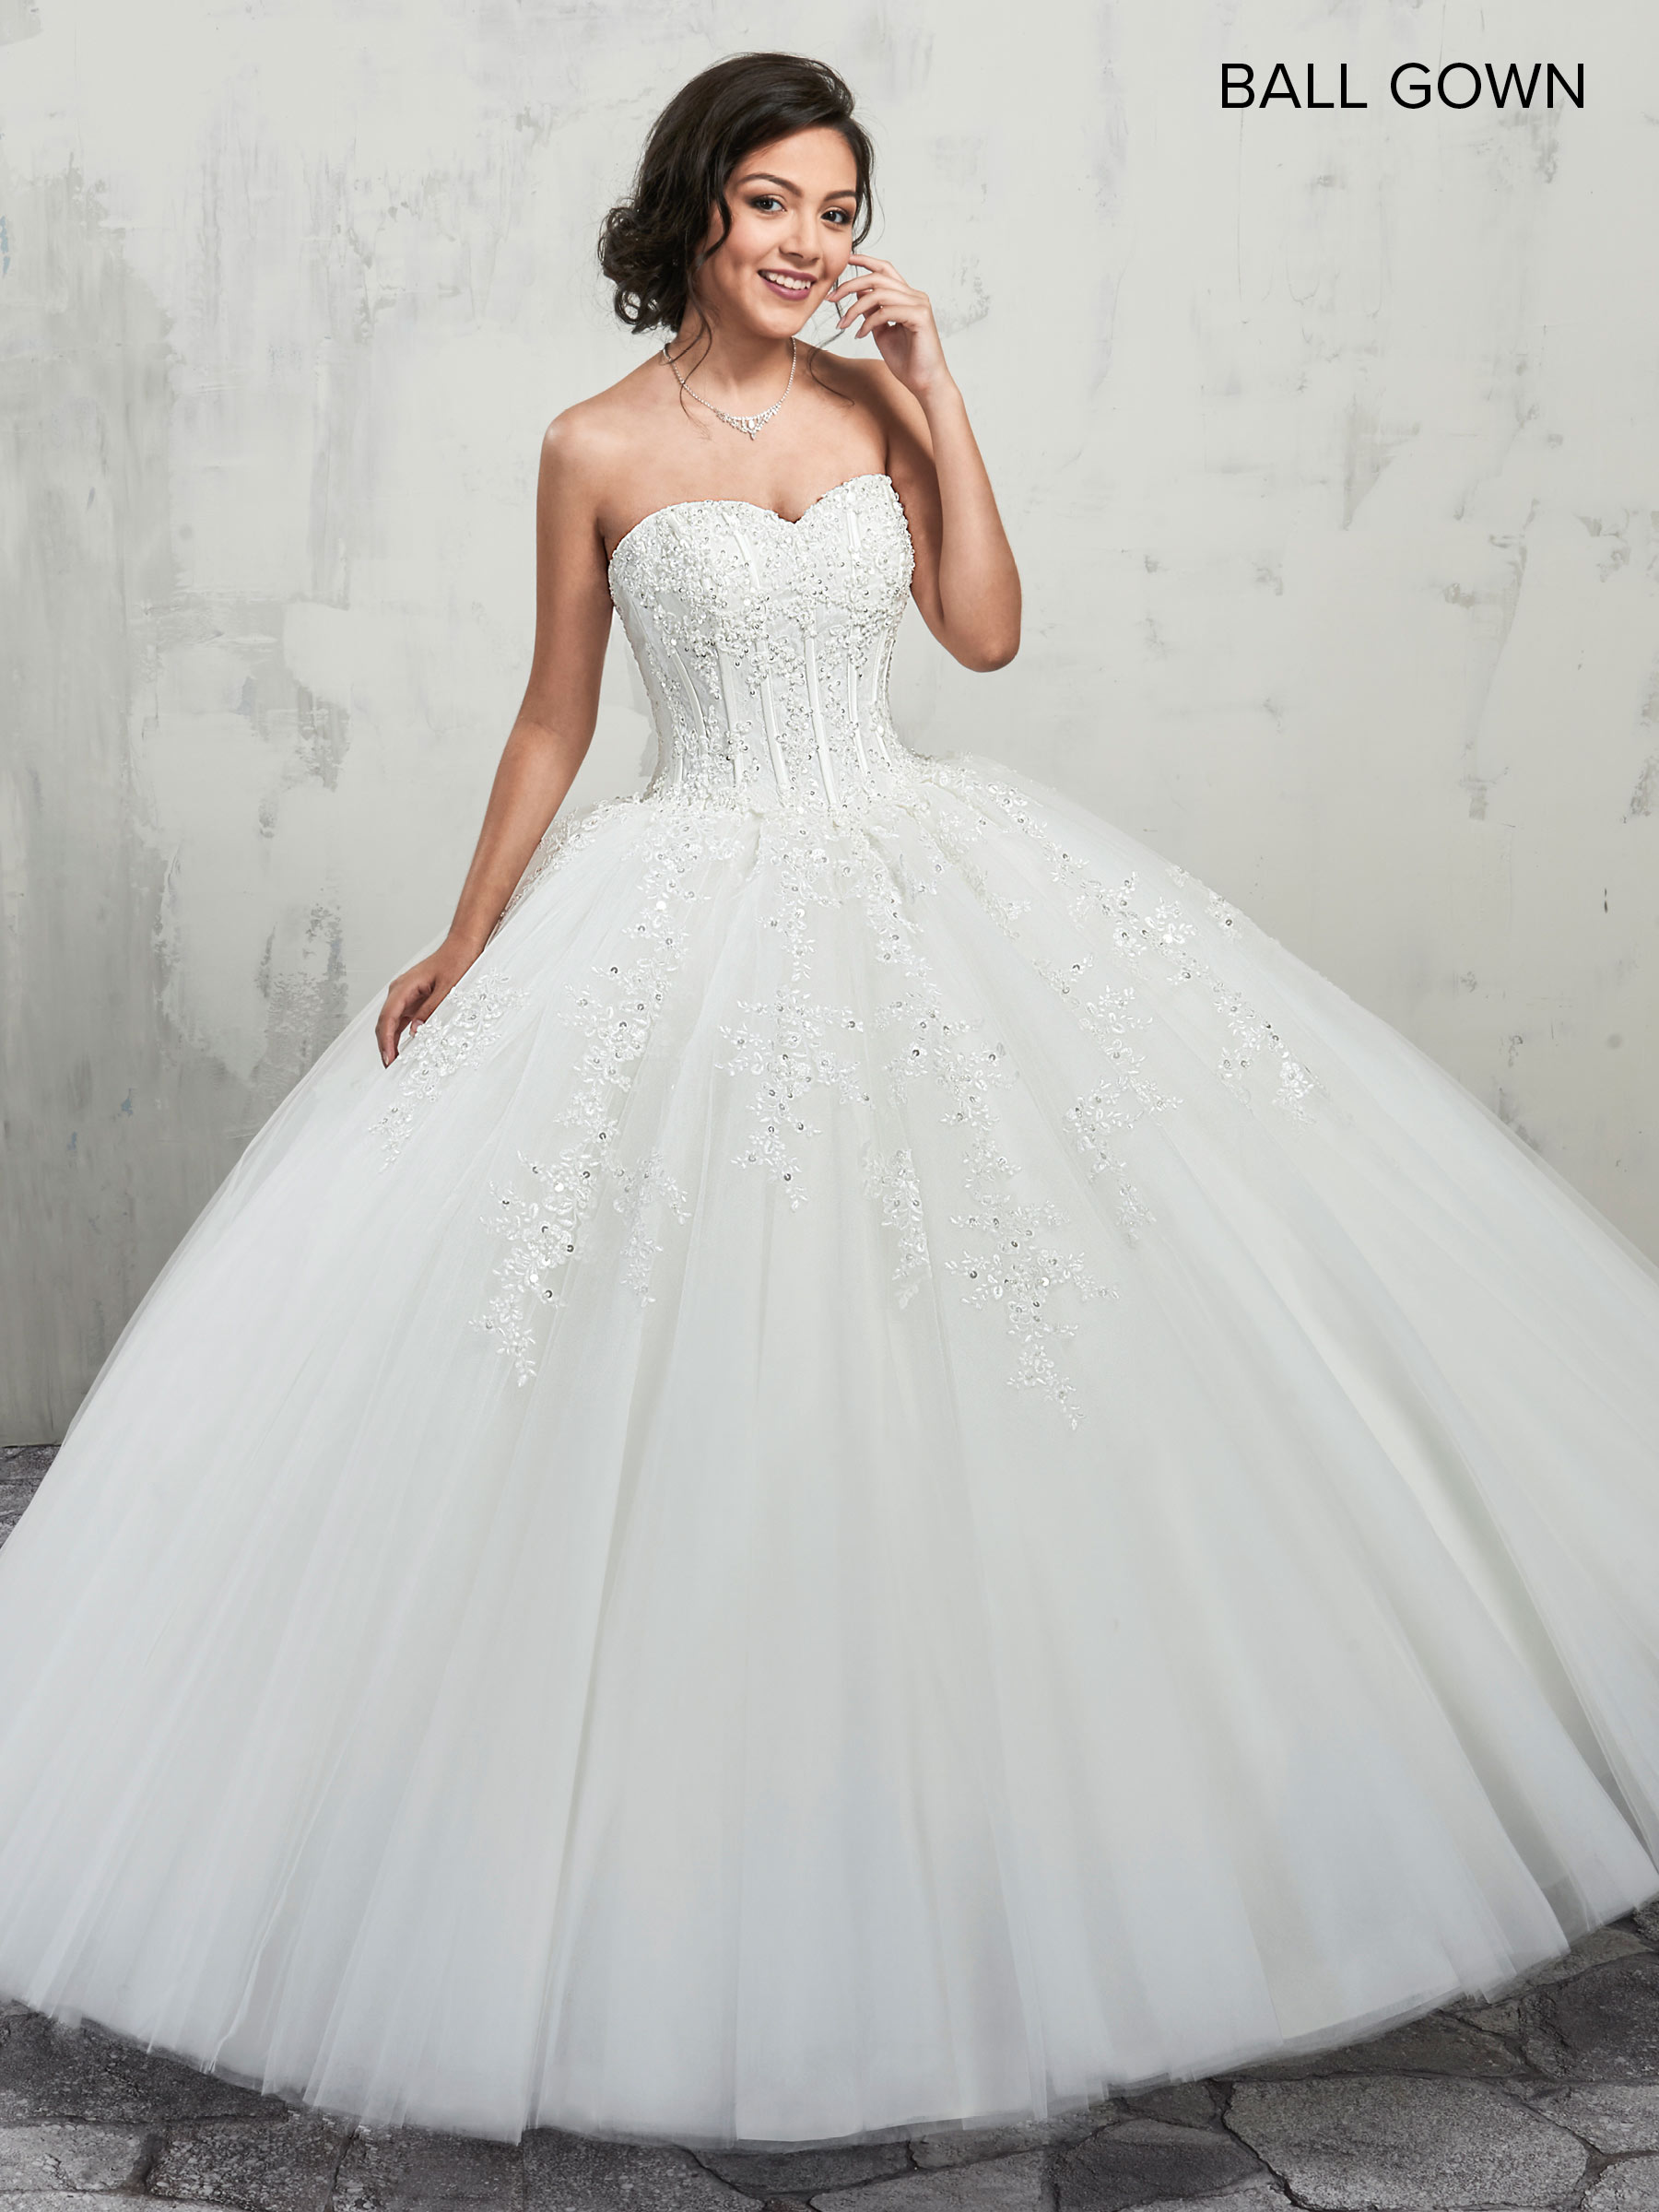 Bridal Ball Gowns Style Mb6001 In Ivory Or White Color